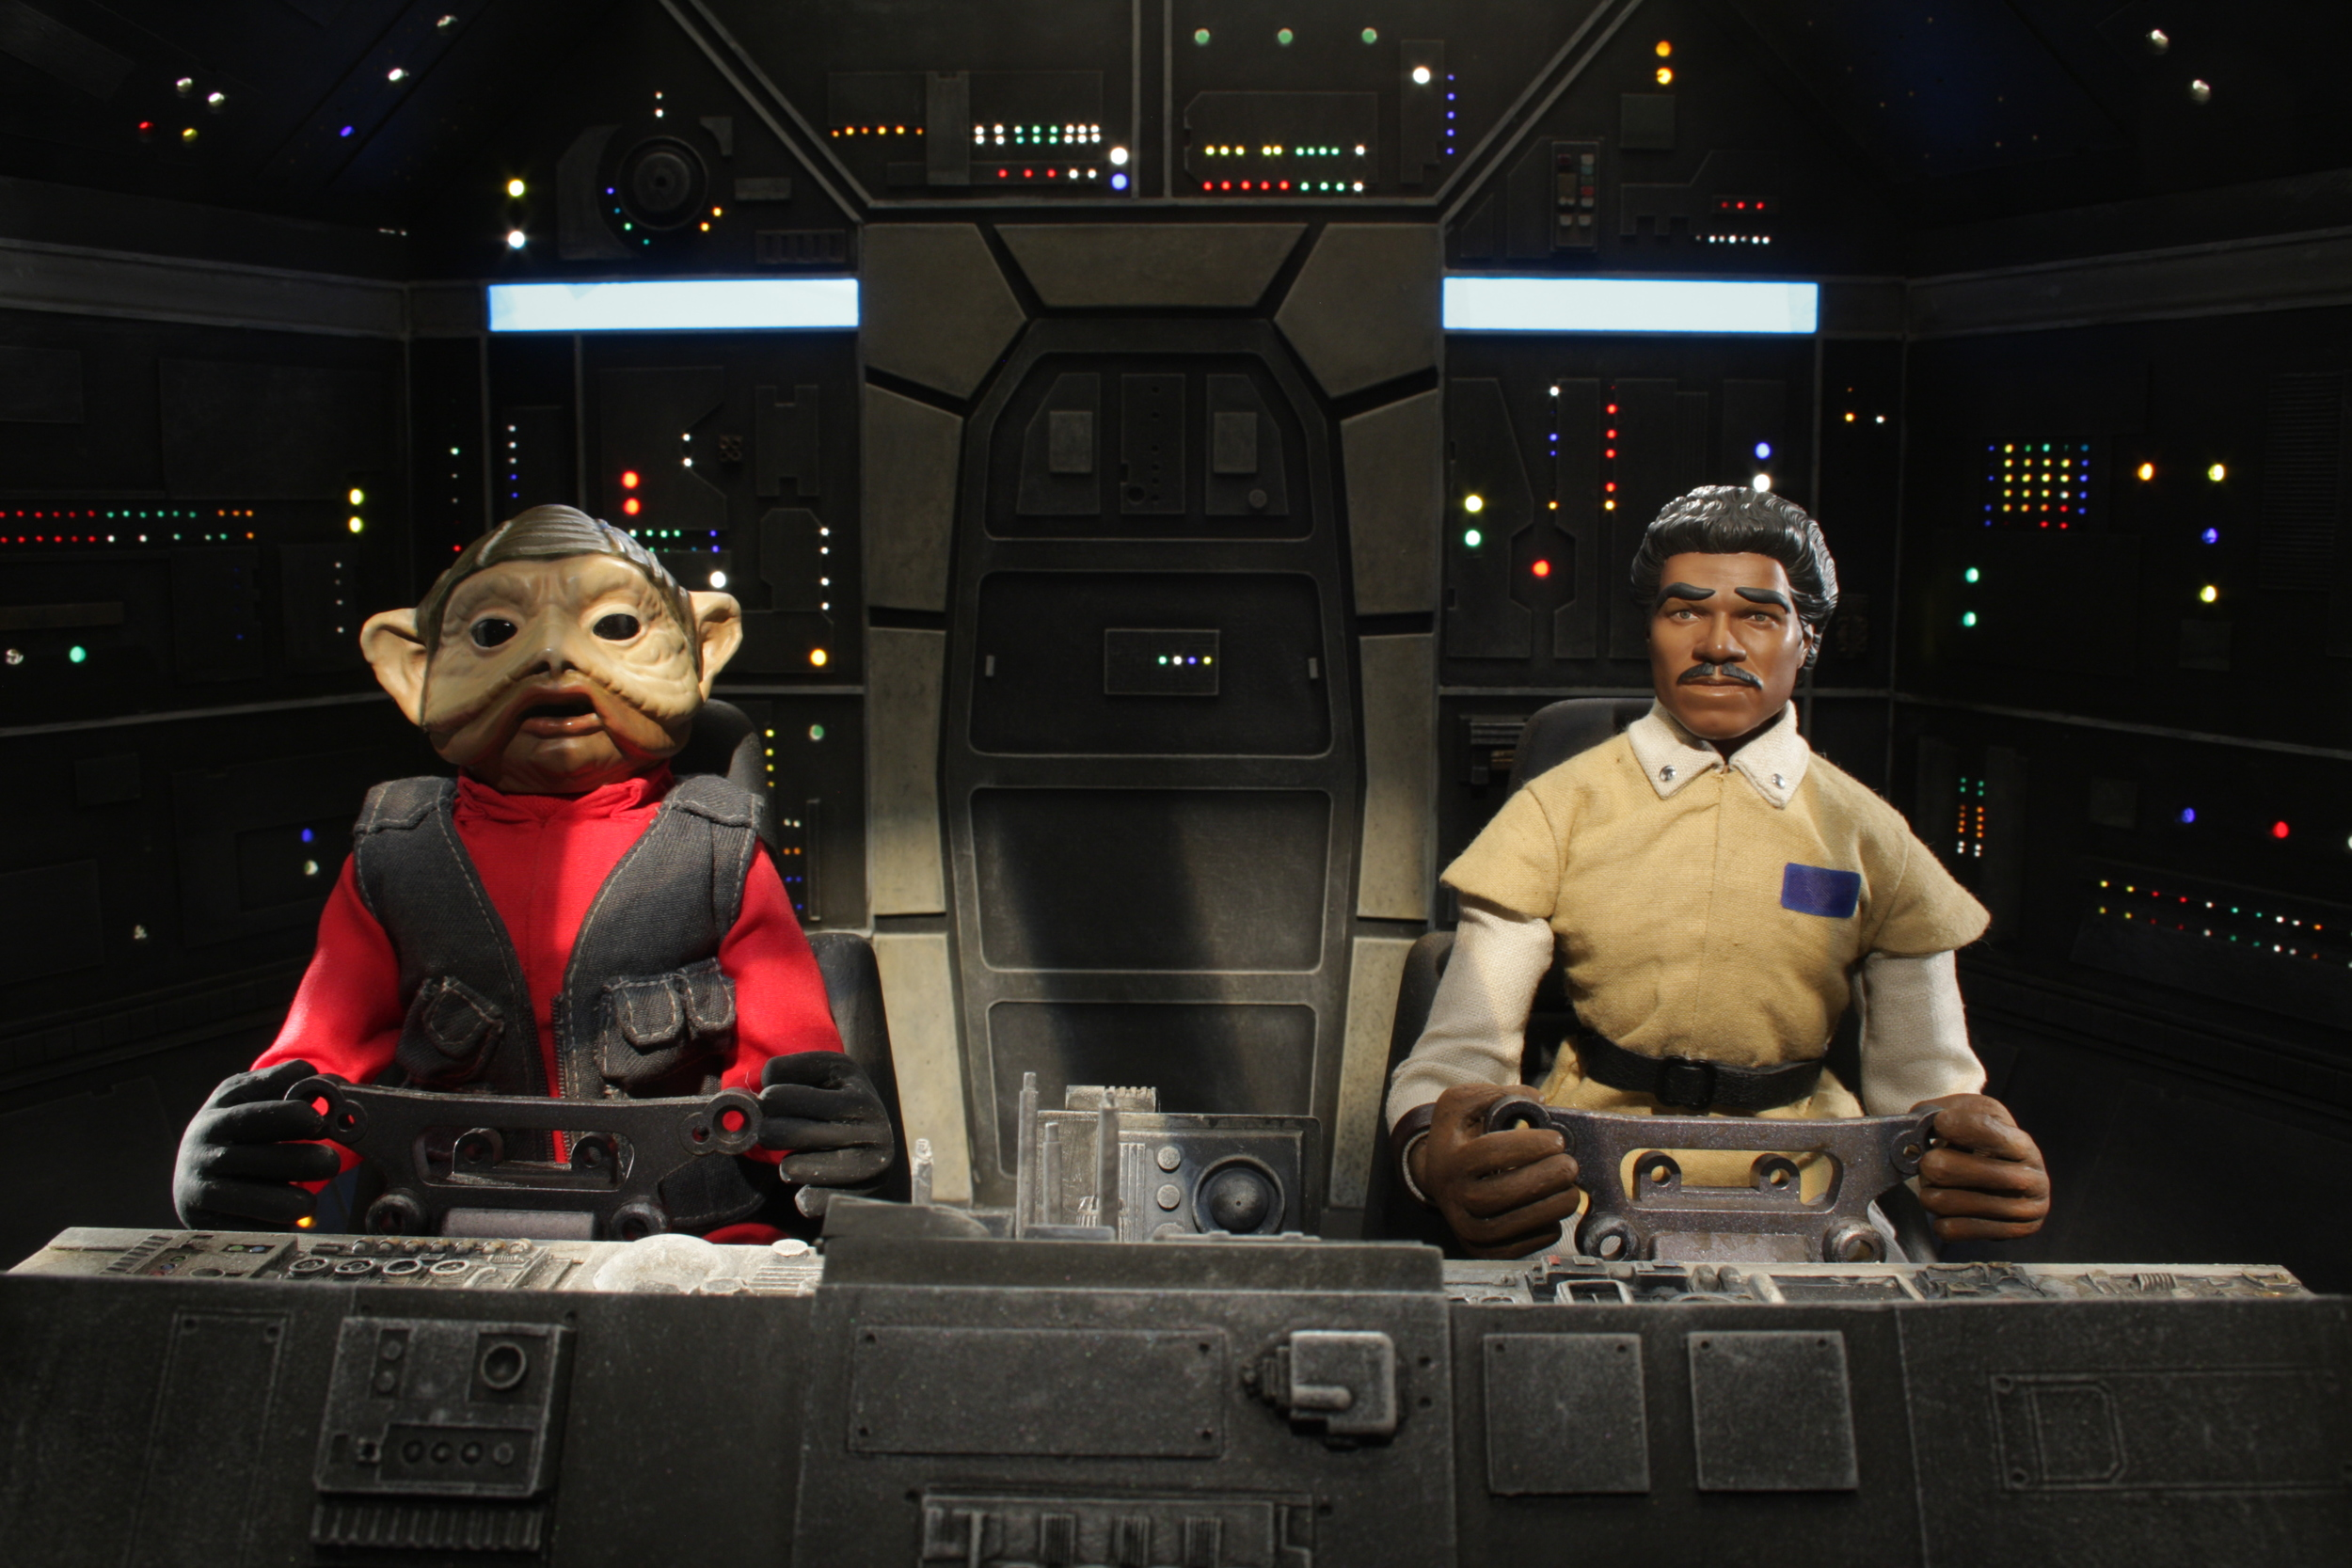 Robot Chicken Star Wars 2 Image 43.jpg